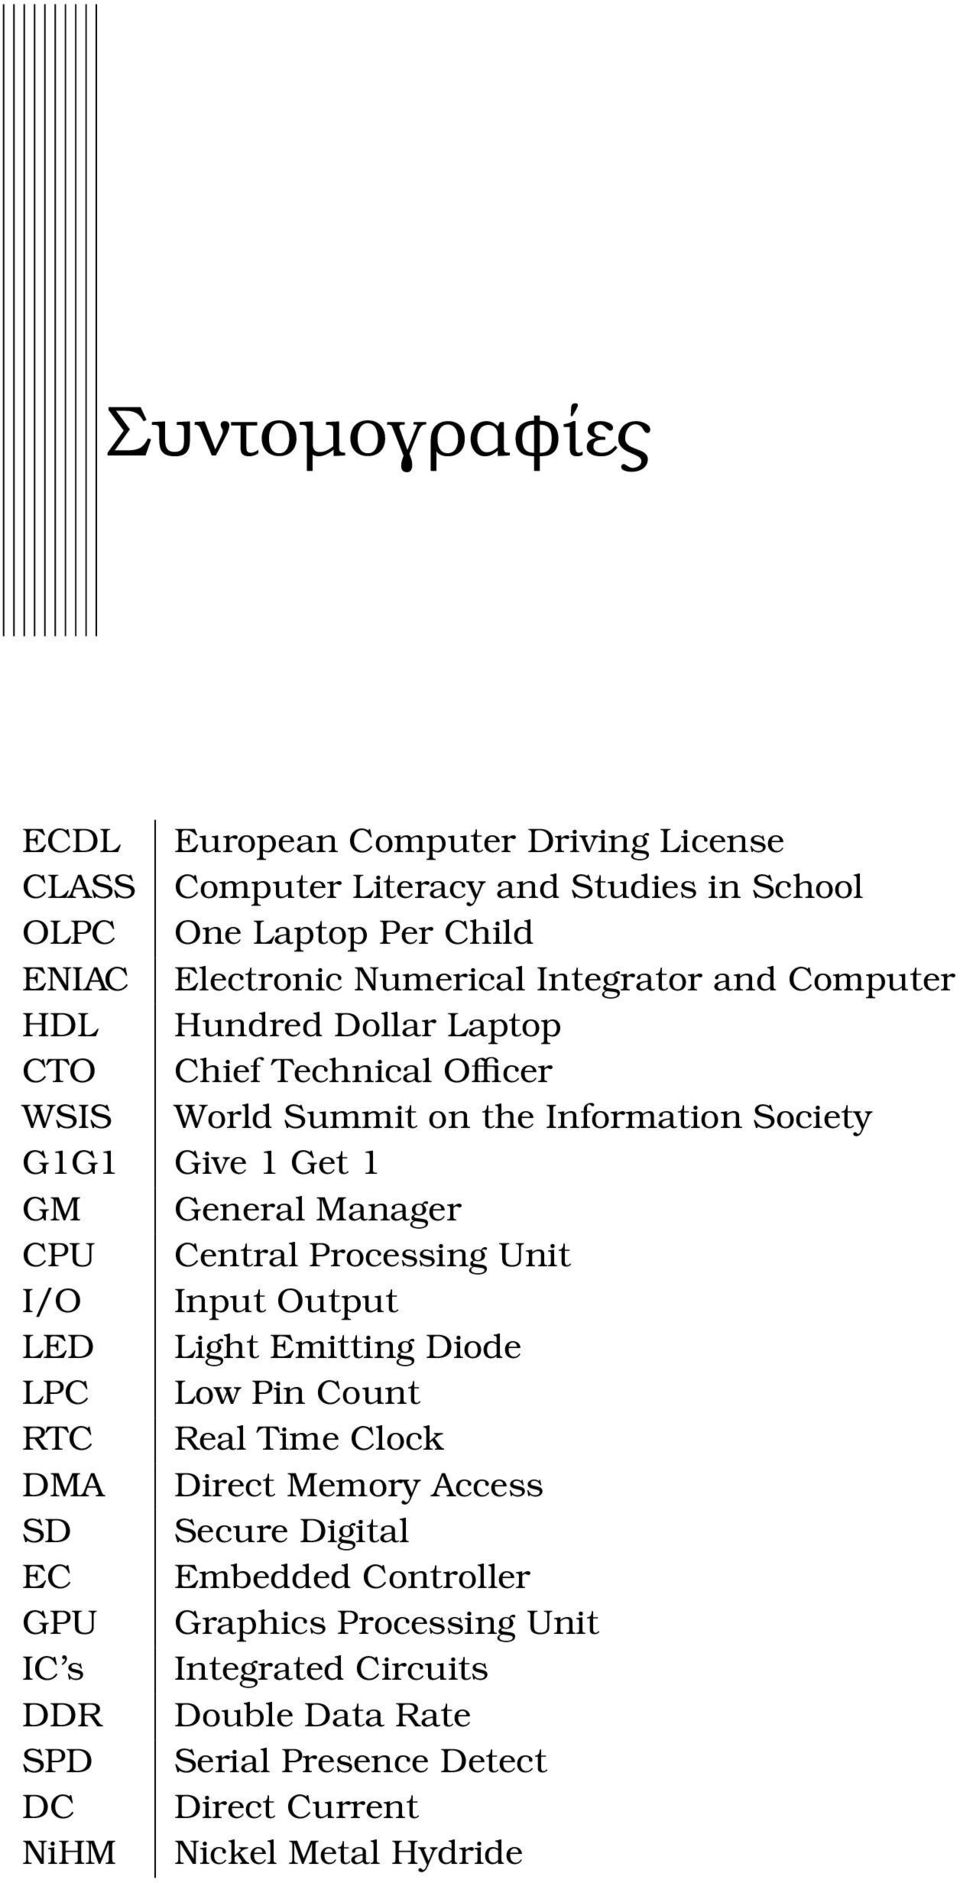 Manager CPU Central Processing Unit I/O Input Output LED Light Emitting Diode LPC Low Pin Count RTC Real Time Clock DMA Direct Memory Access SD Secure